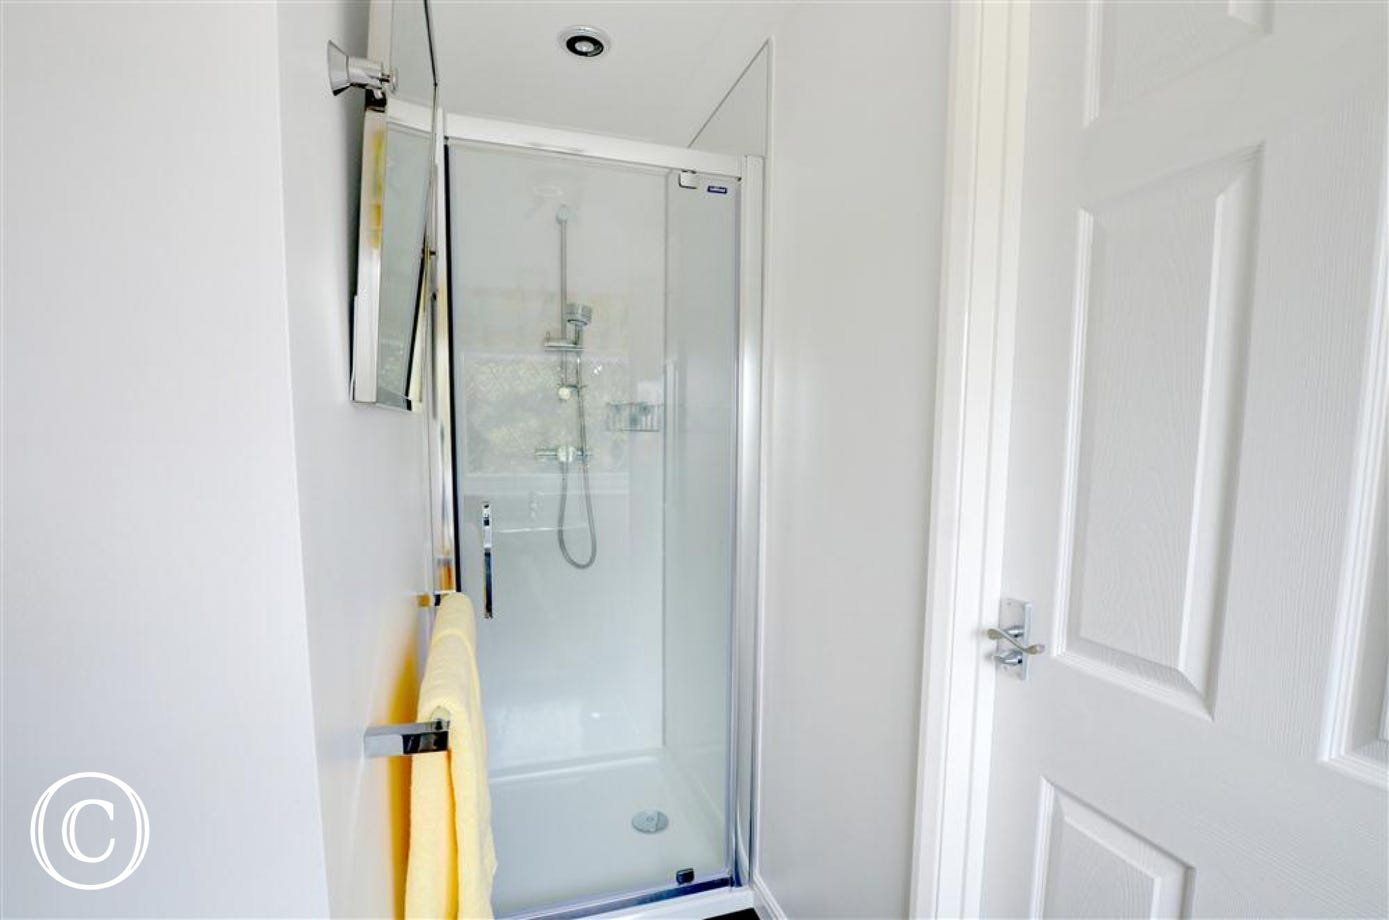 The En-suite showing shower cubicle and towels.